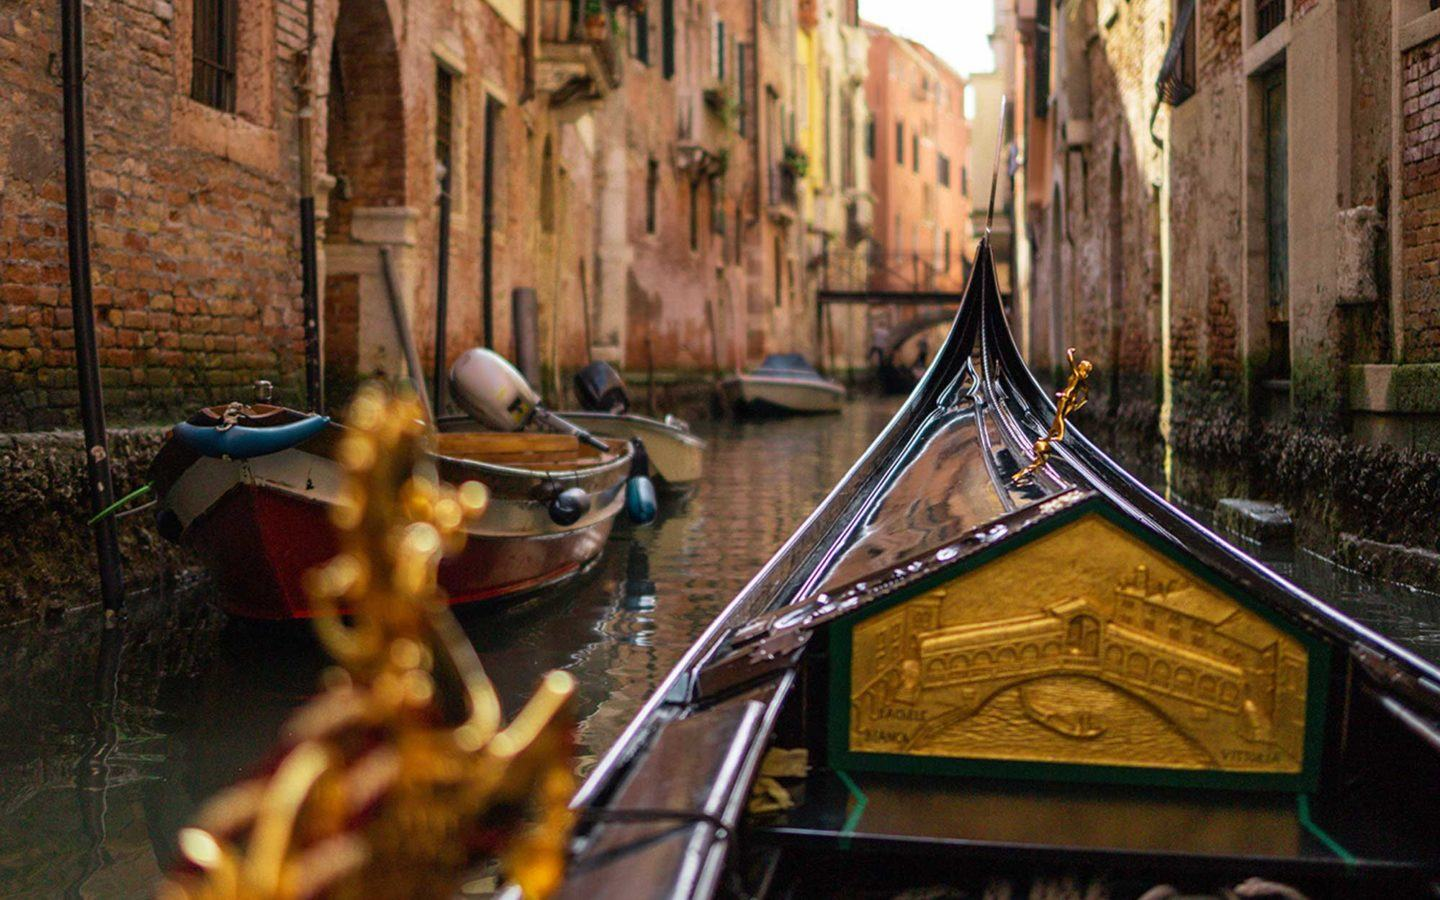 gondola riding through canal in venice